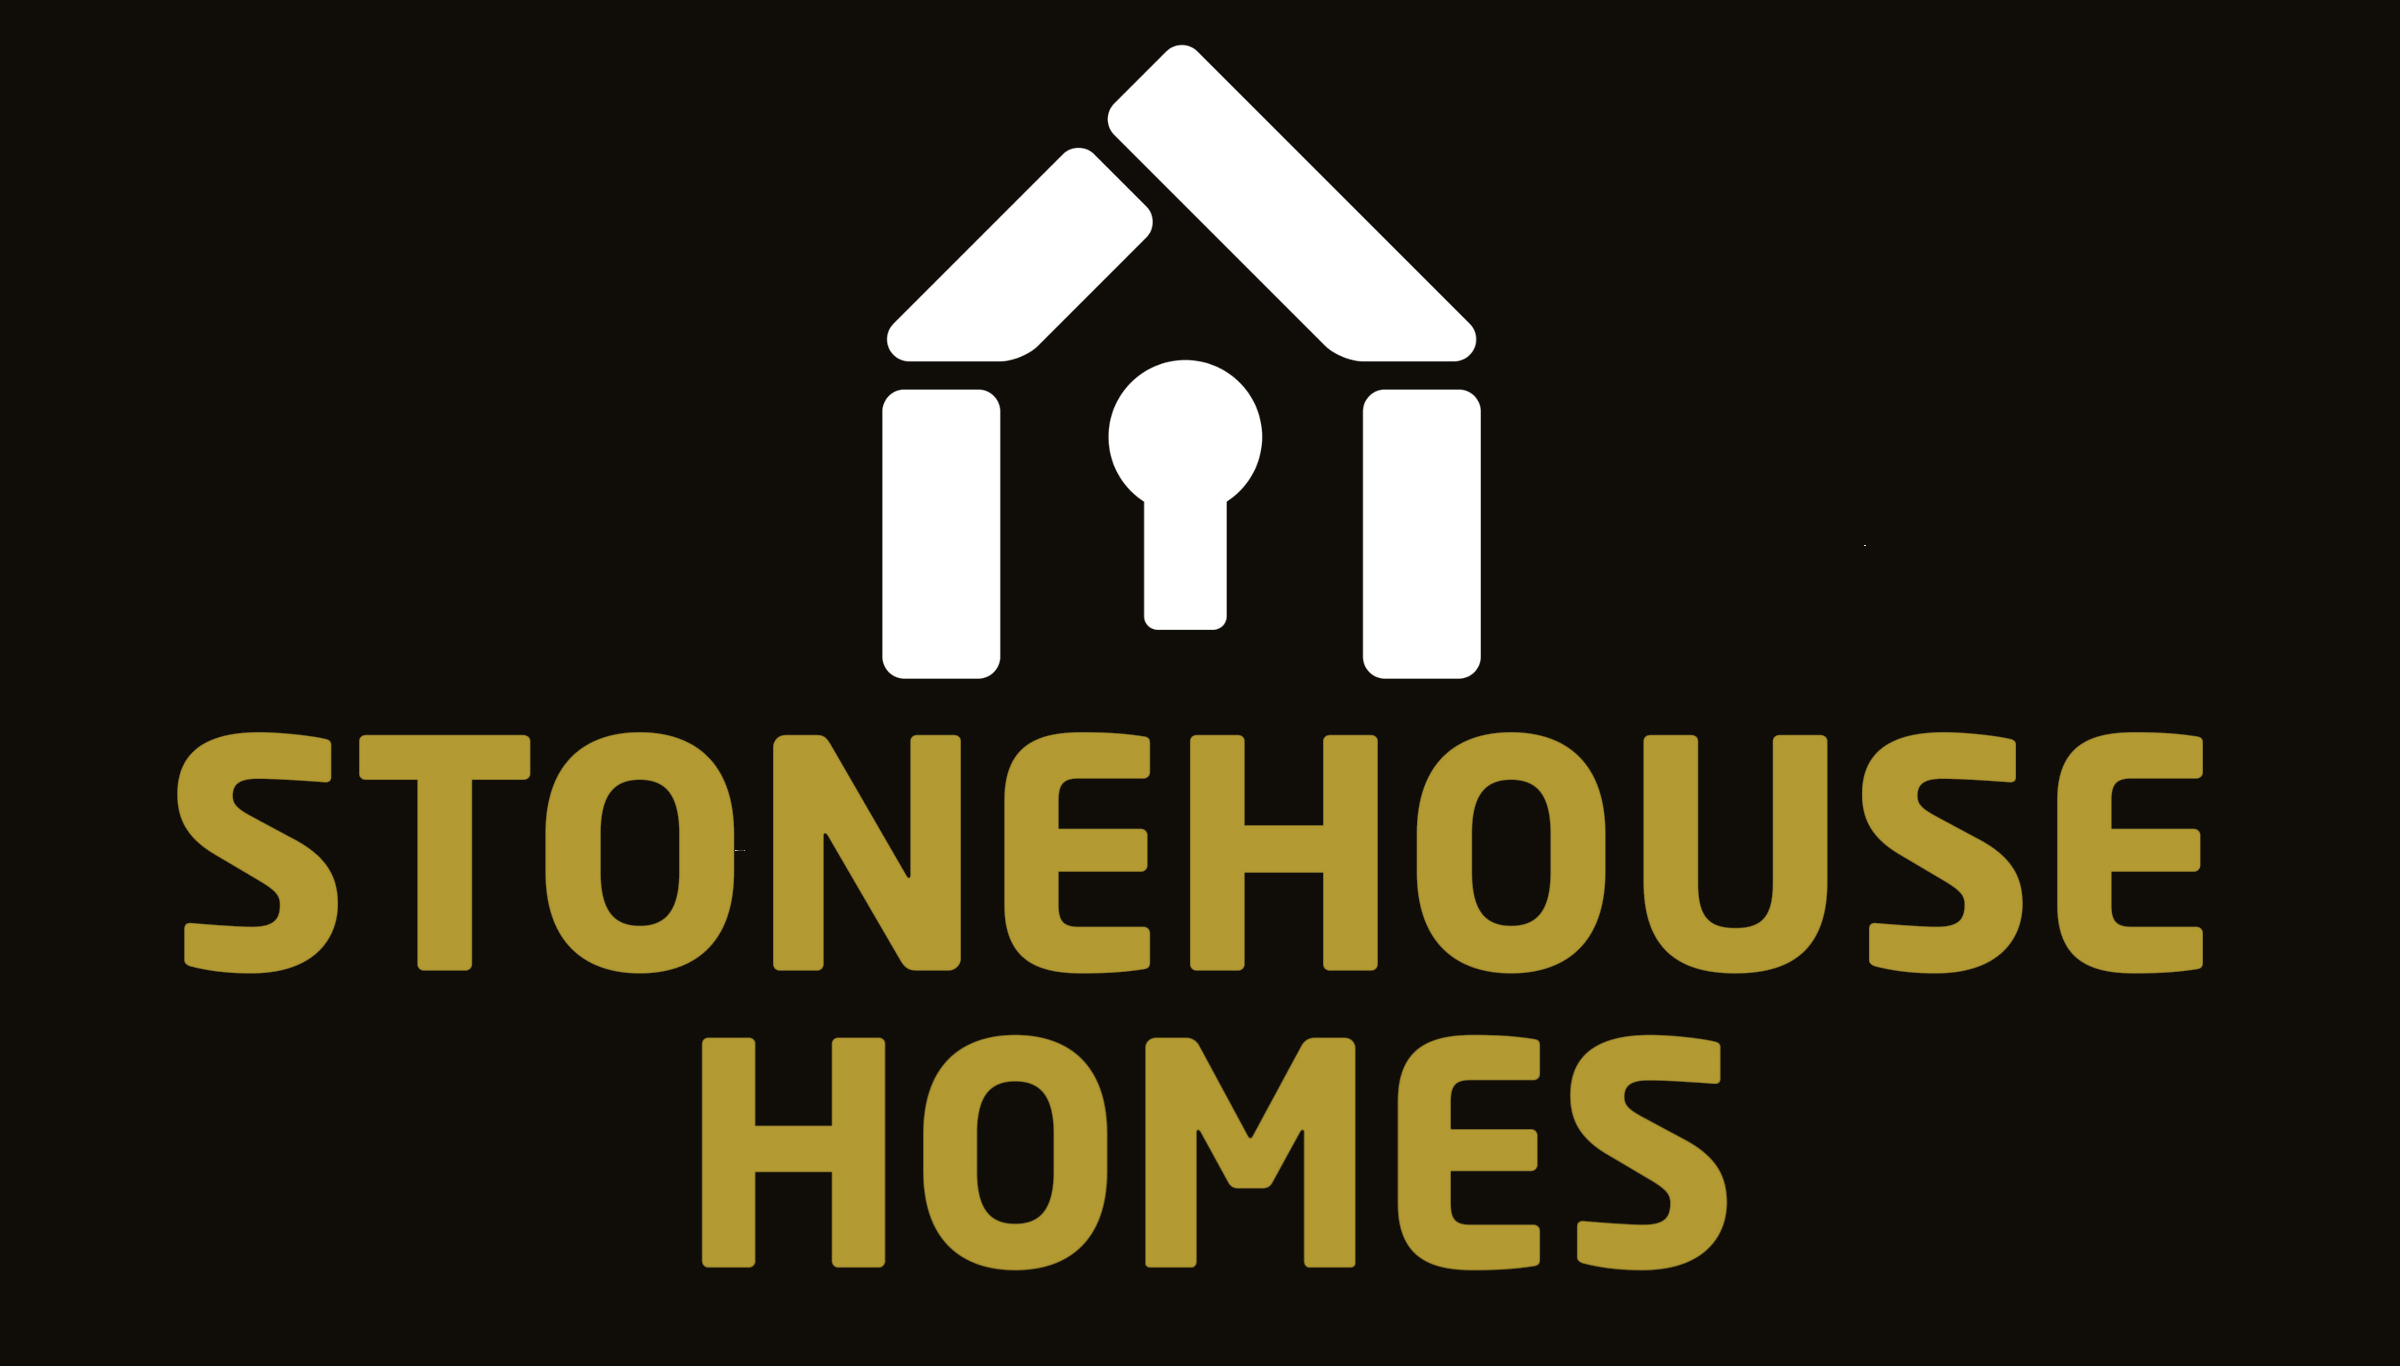 Stonehouse Homes